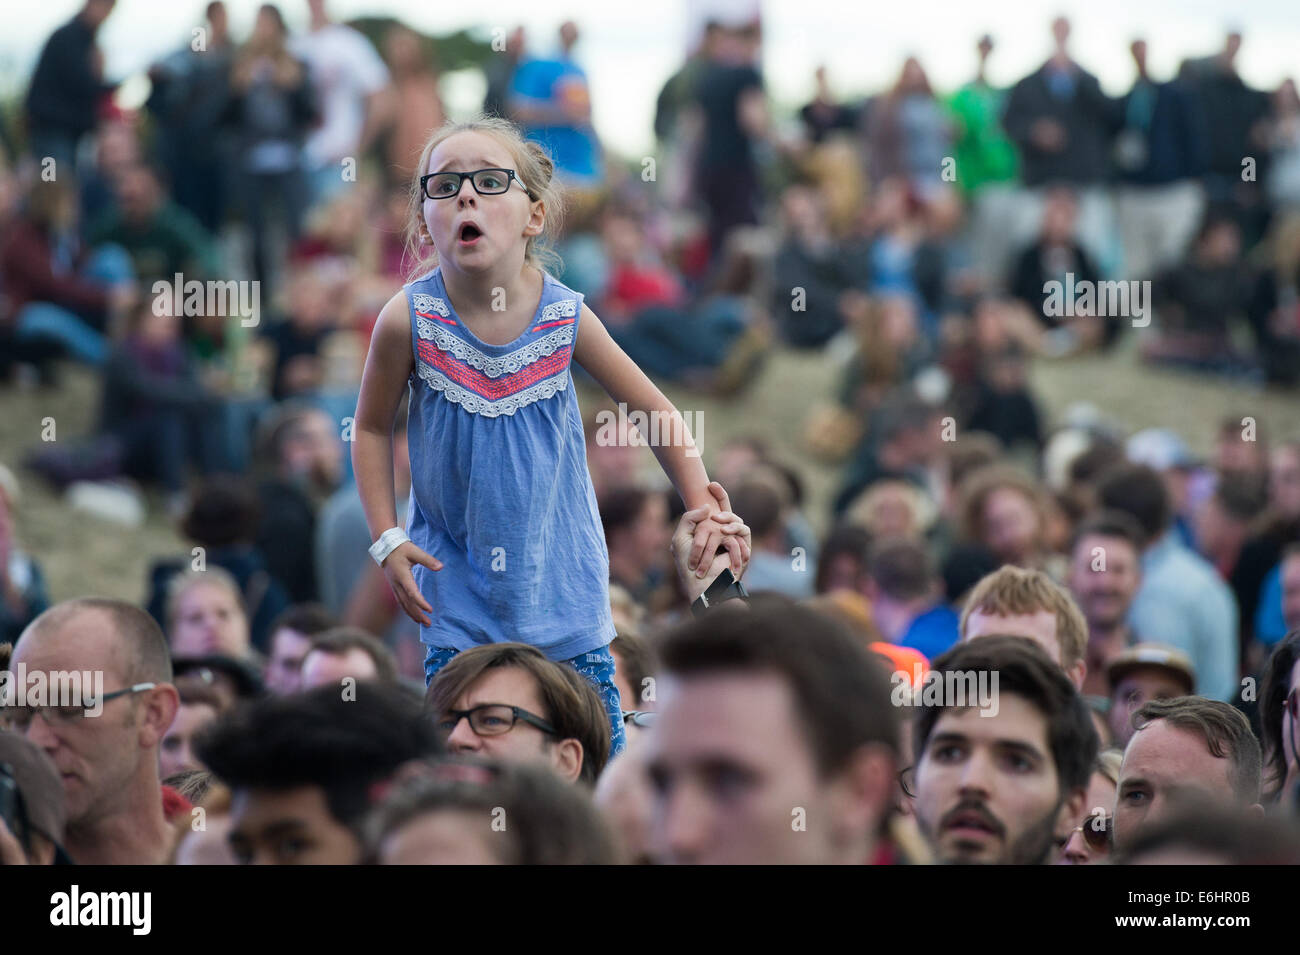 Southsea, UK, 24th Aug, 2014. Victorious Festival - Sunday, Southsea, Hampshire, England. Credit:  MeonStock/Alamy Stock Photo